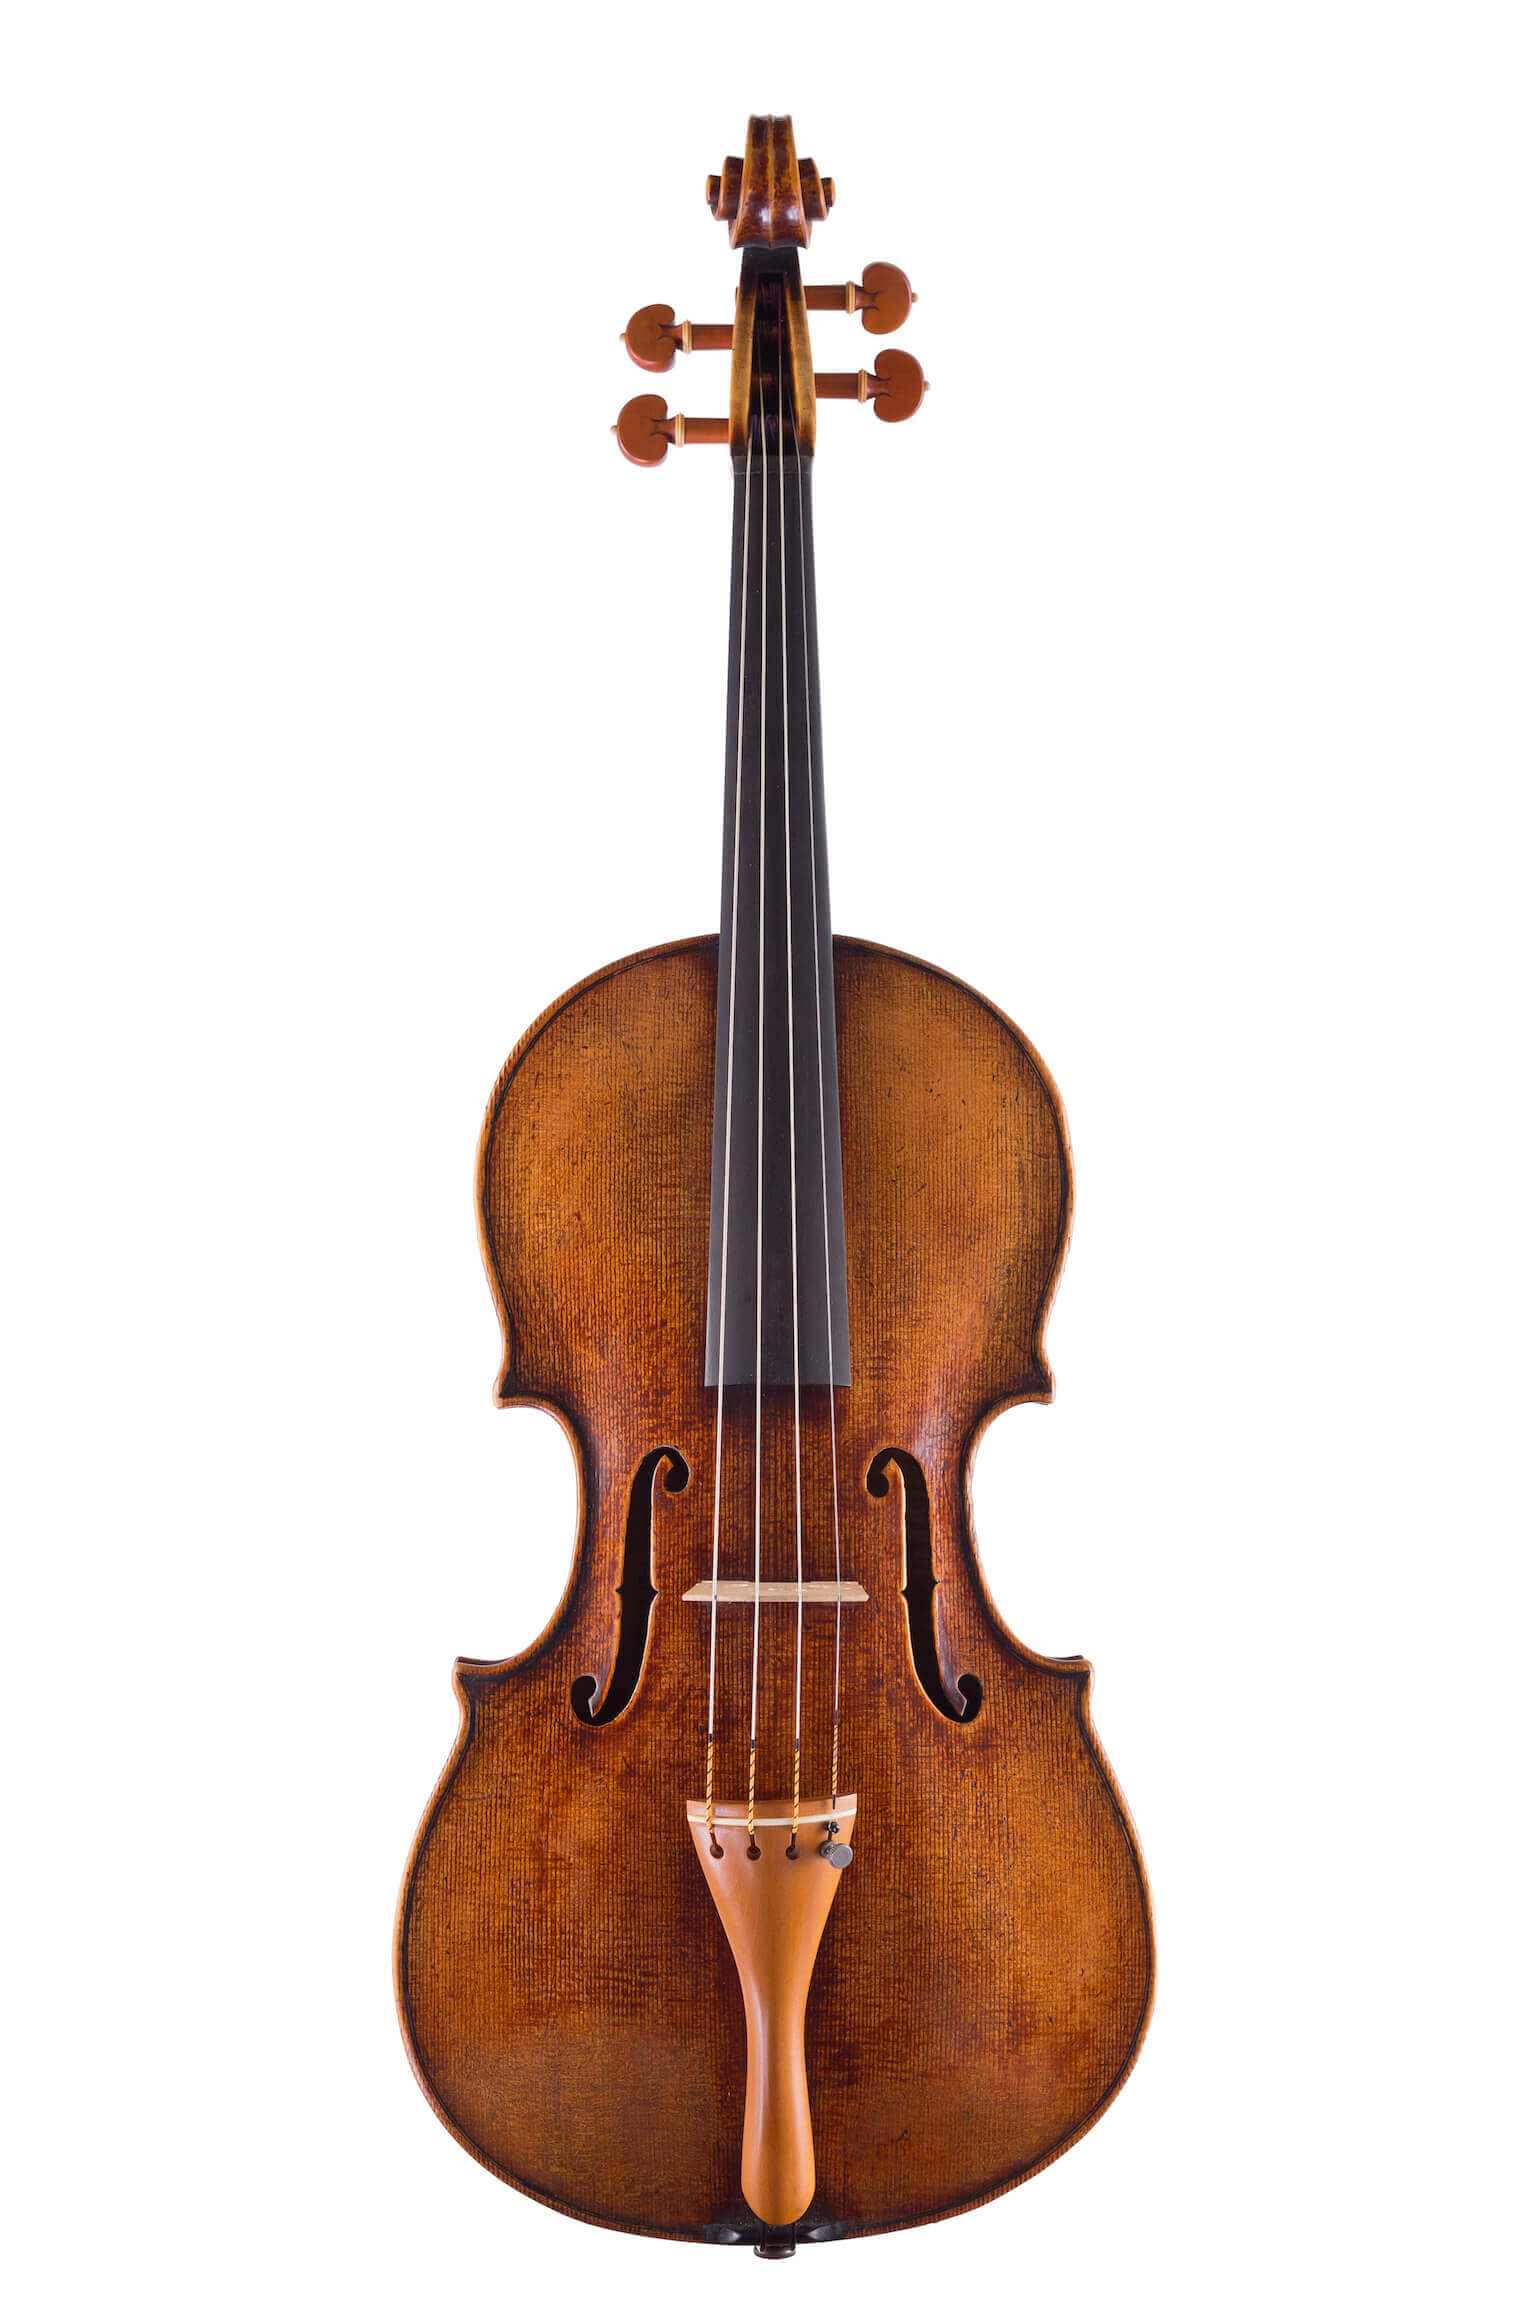 Viola by Luiz Amorim, Maggini model, 2017